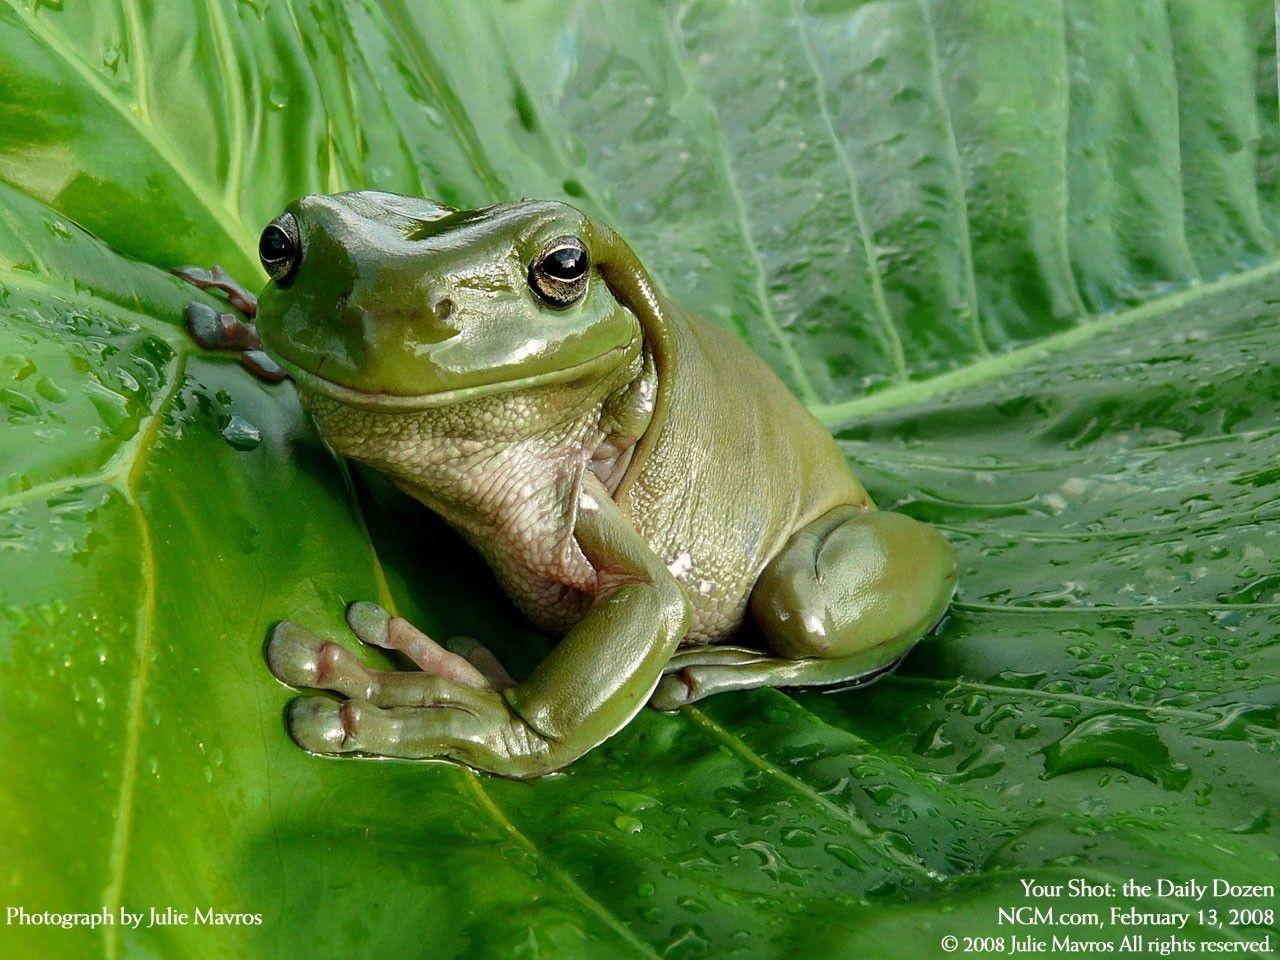 Cute Frog Wallpapers 1280x960